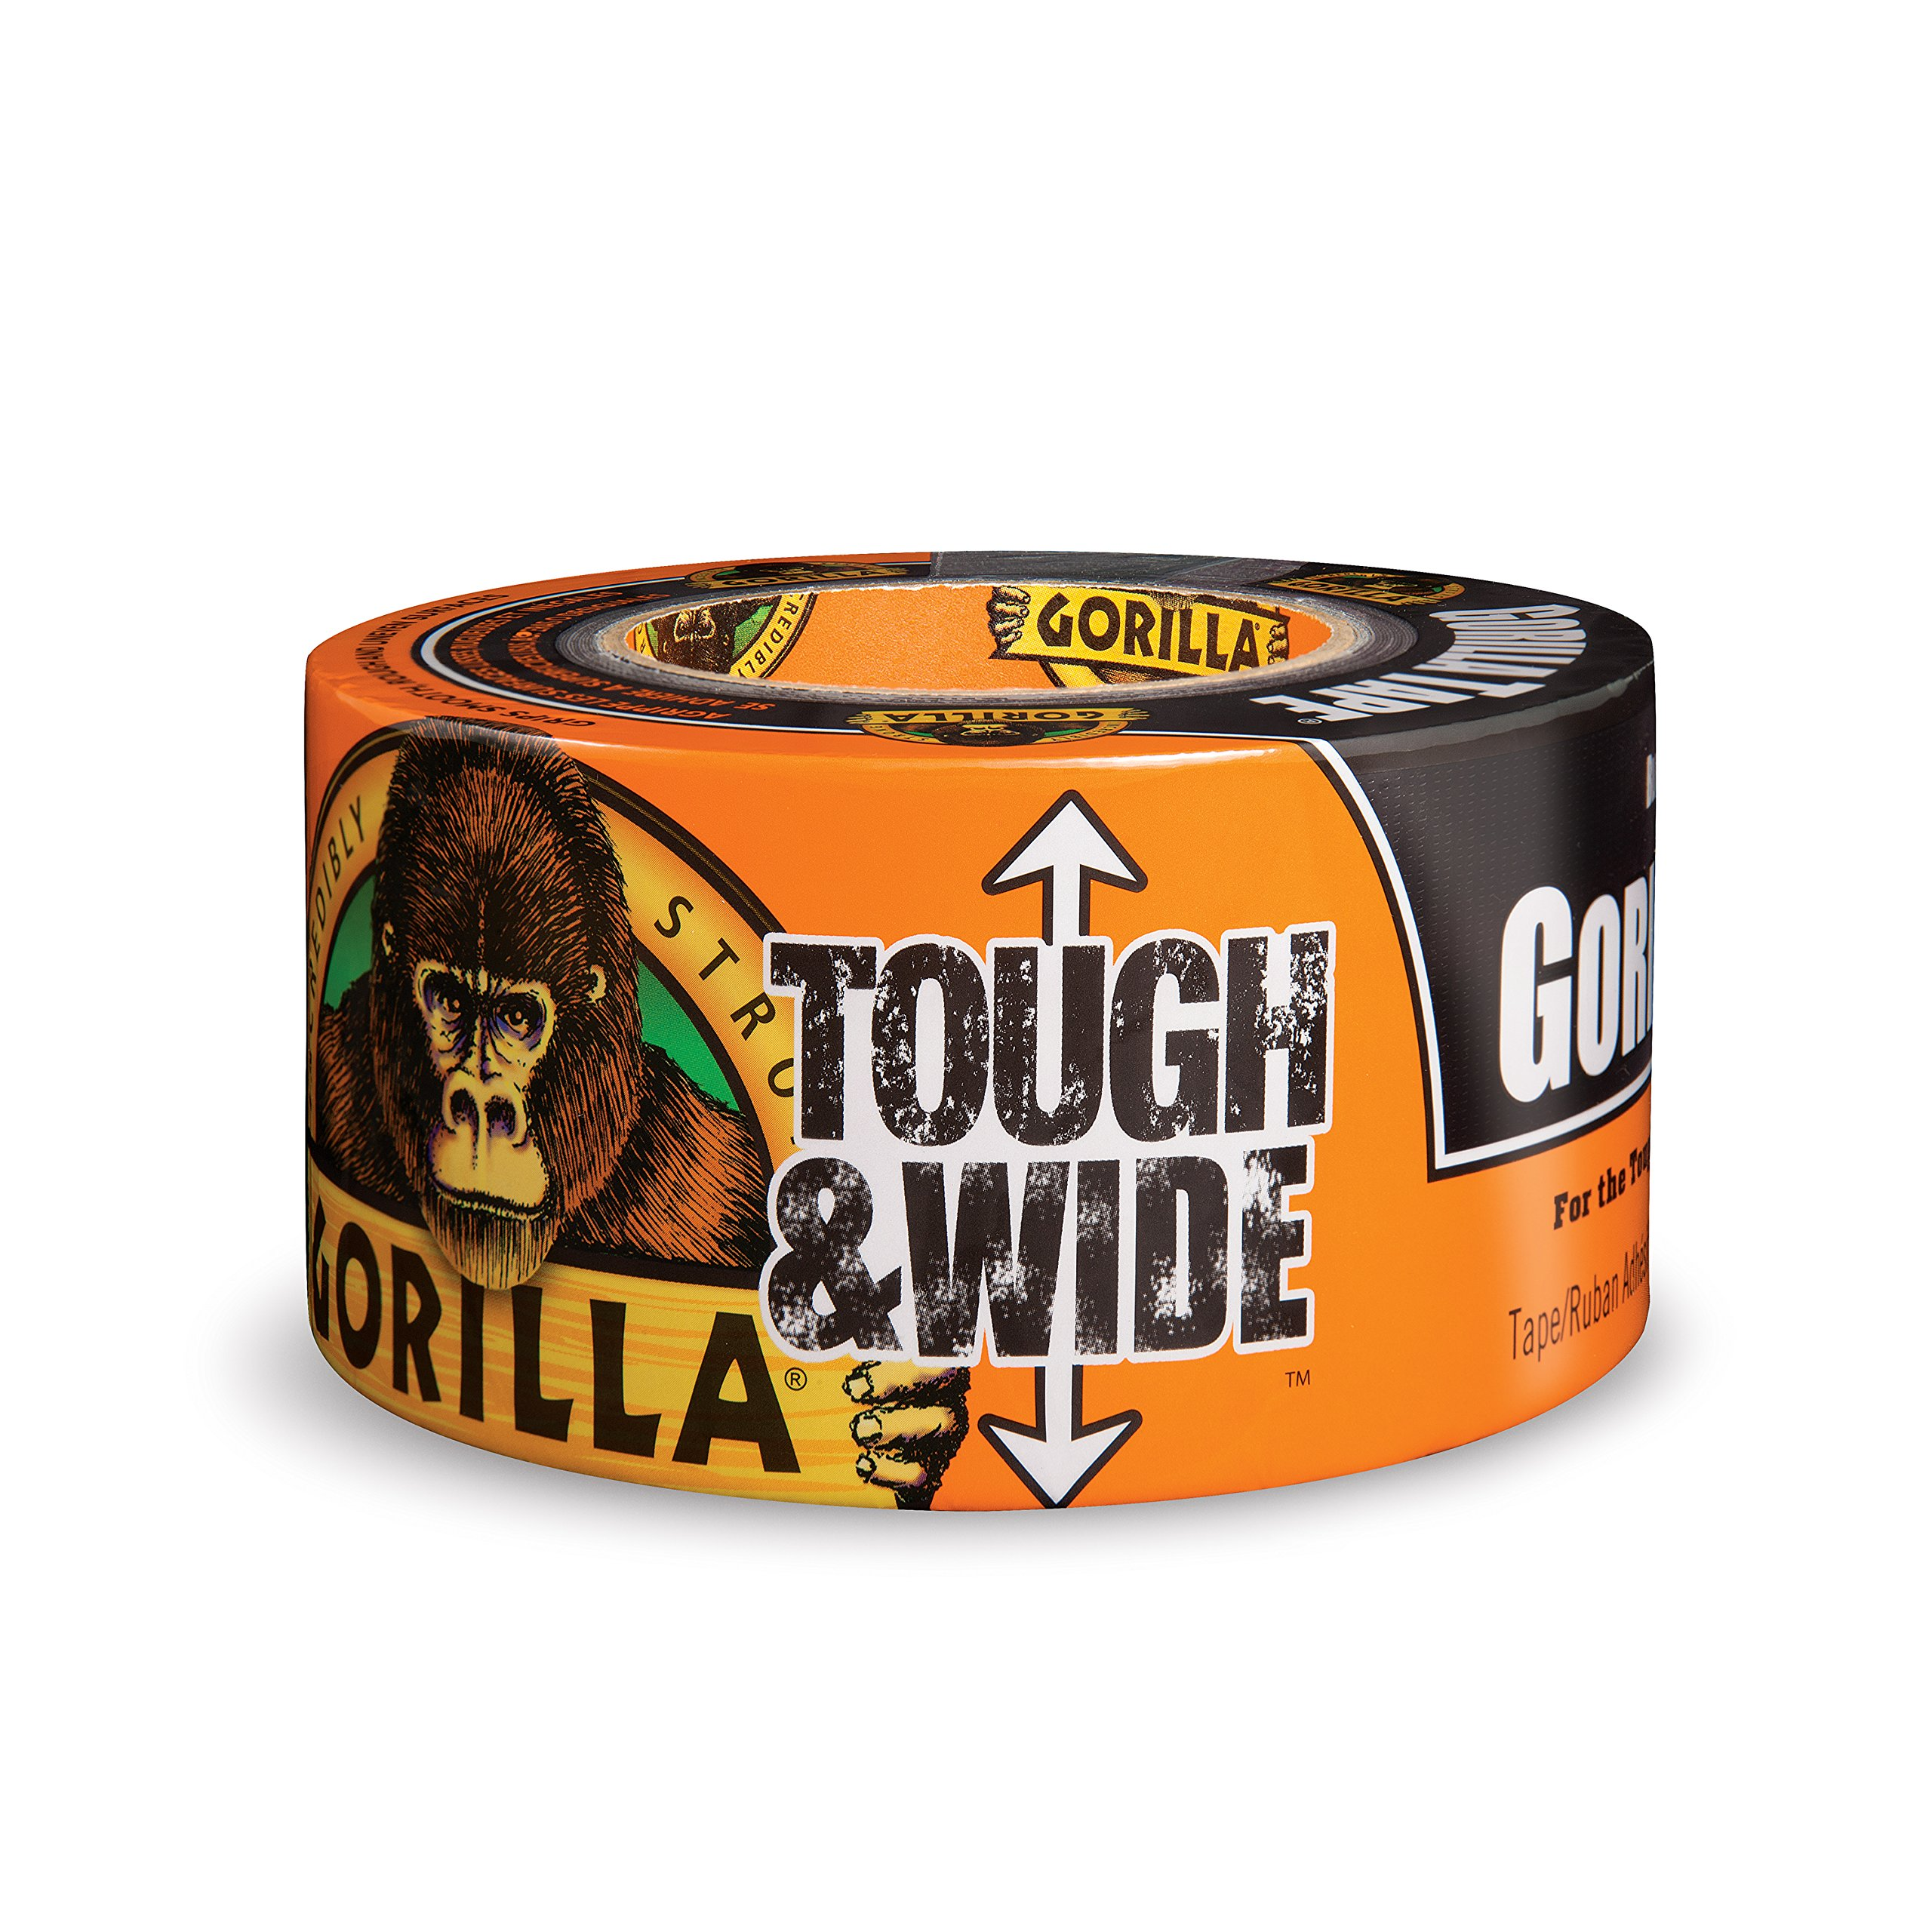 Gorilla 6003001 Tough & Wide  Duct Tape, 2.88-Inch x 30-Yards by Gorilla